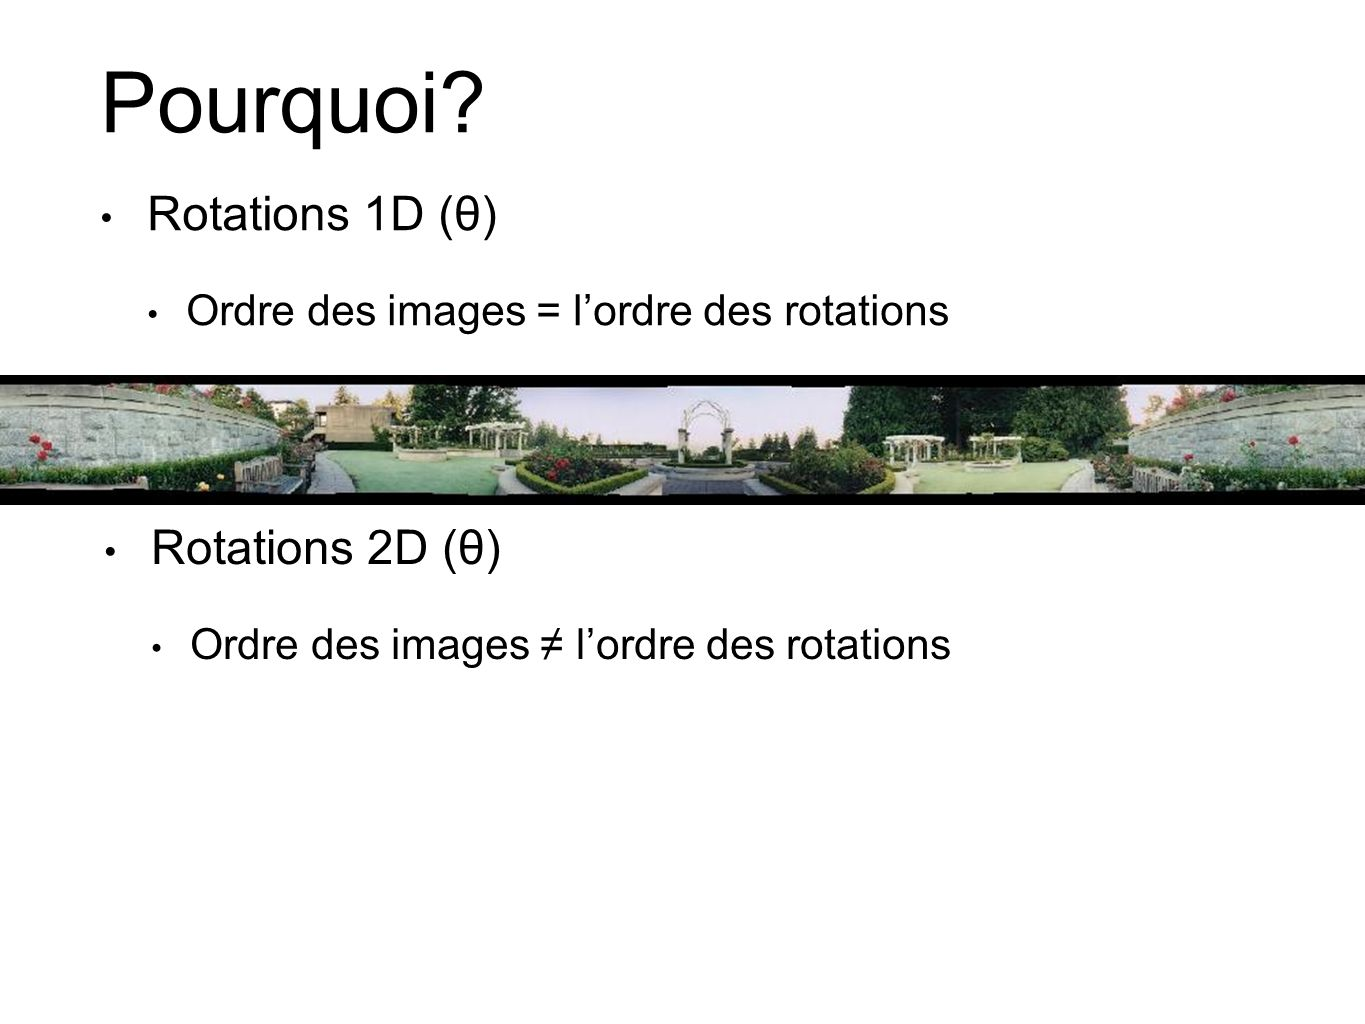 Pourquoi Rotations 1D (θ) Rotations 2D (θ)